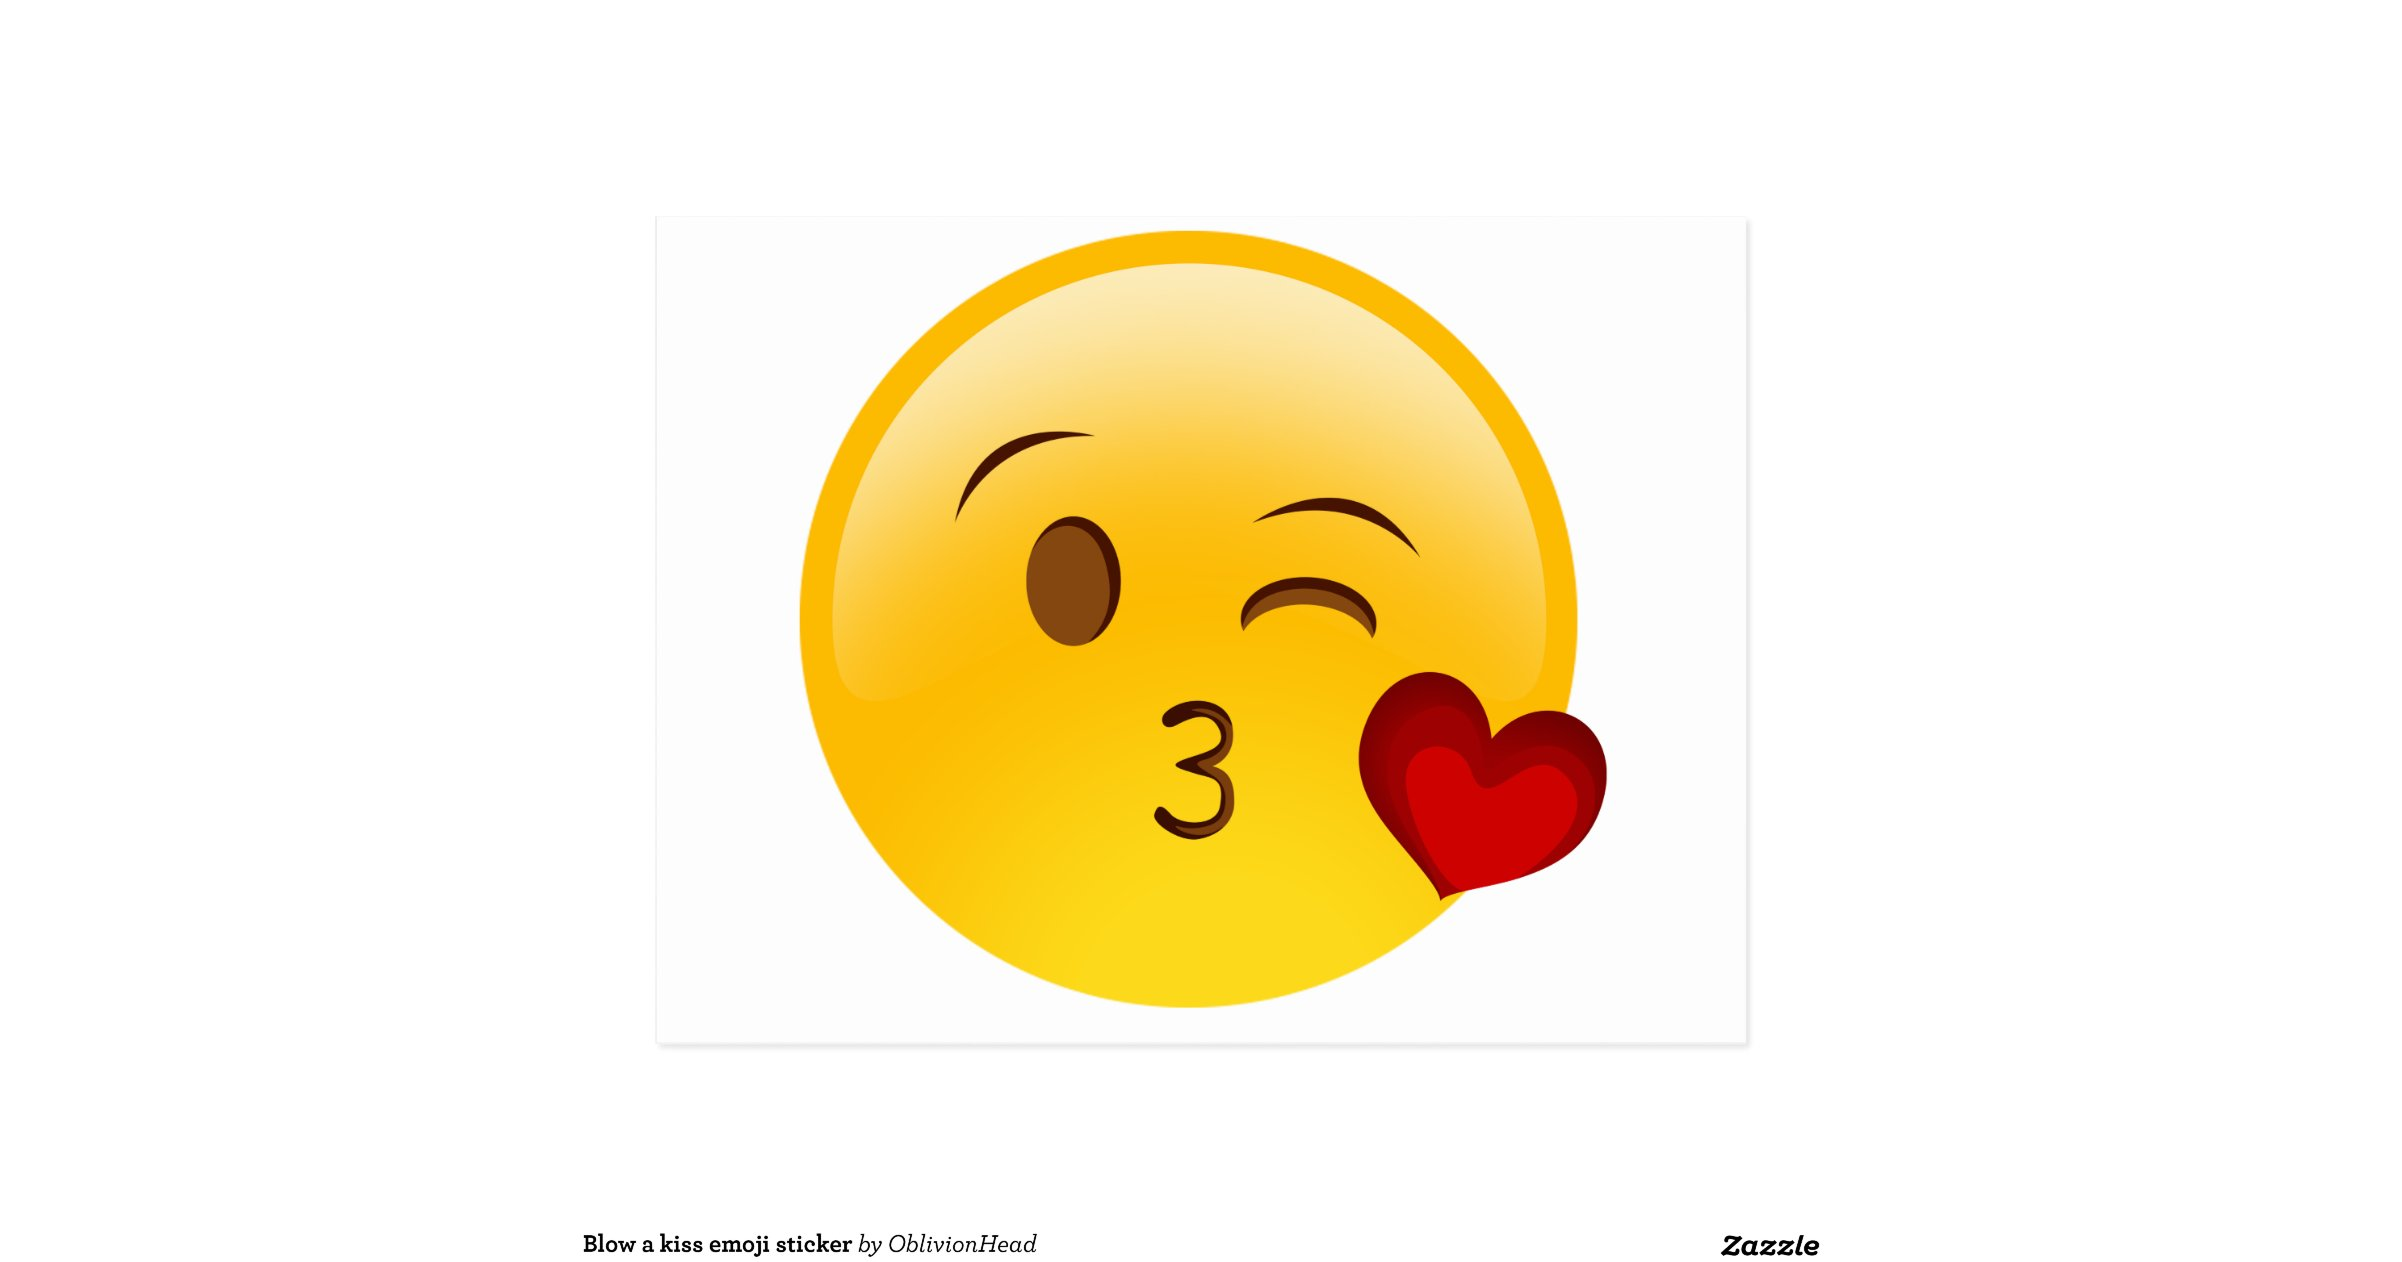 off grid home designs with Blow A Kiss Emoji Sticker Postcard 239158822584169548 on Big beautiful eyes emoji round sticker 217199347089735556 as well Its a girl baby shower cake topper 256039767383191851 also Recording Studios besides Underground Triage Shelter further Super cute emoji round pillow 256477930262092175.